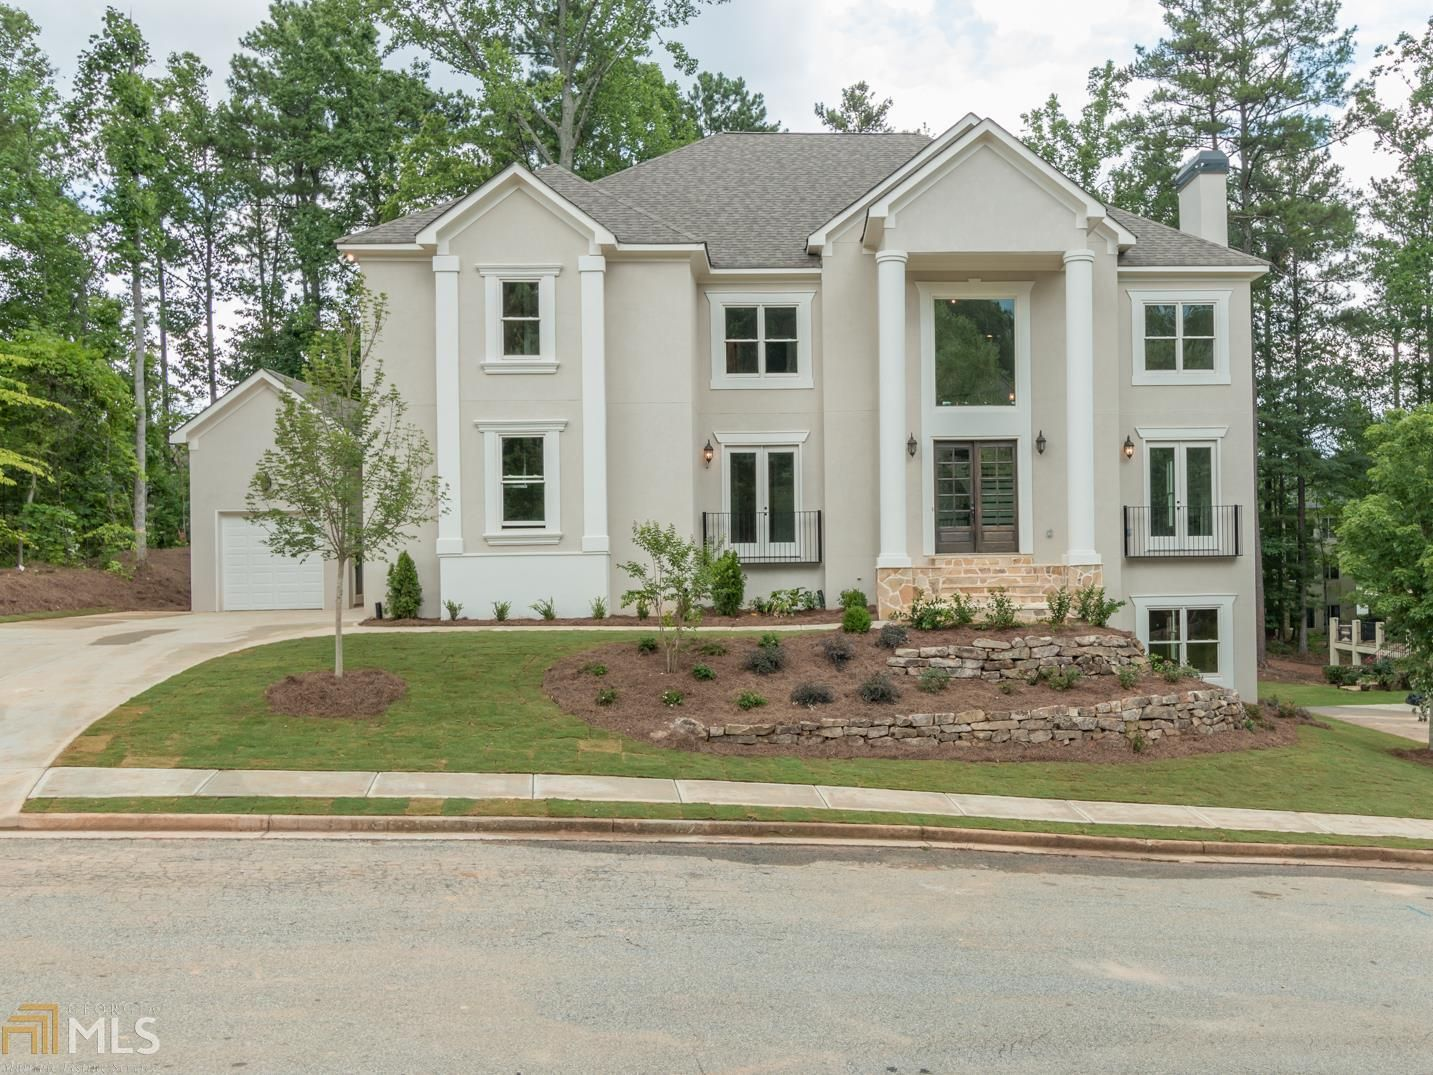 REDUCED! REDUCED! LUXURY NEW CONSTRUCTION IN A